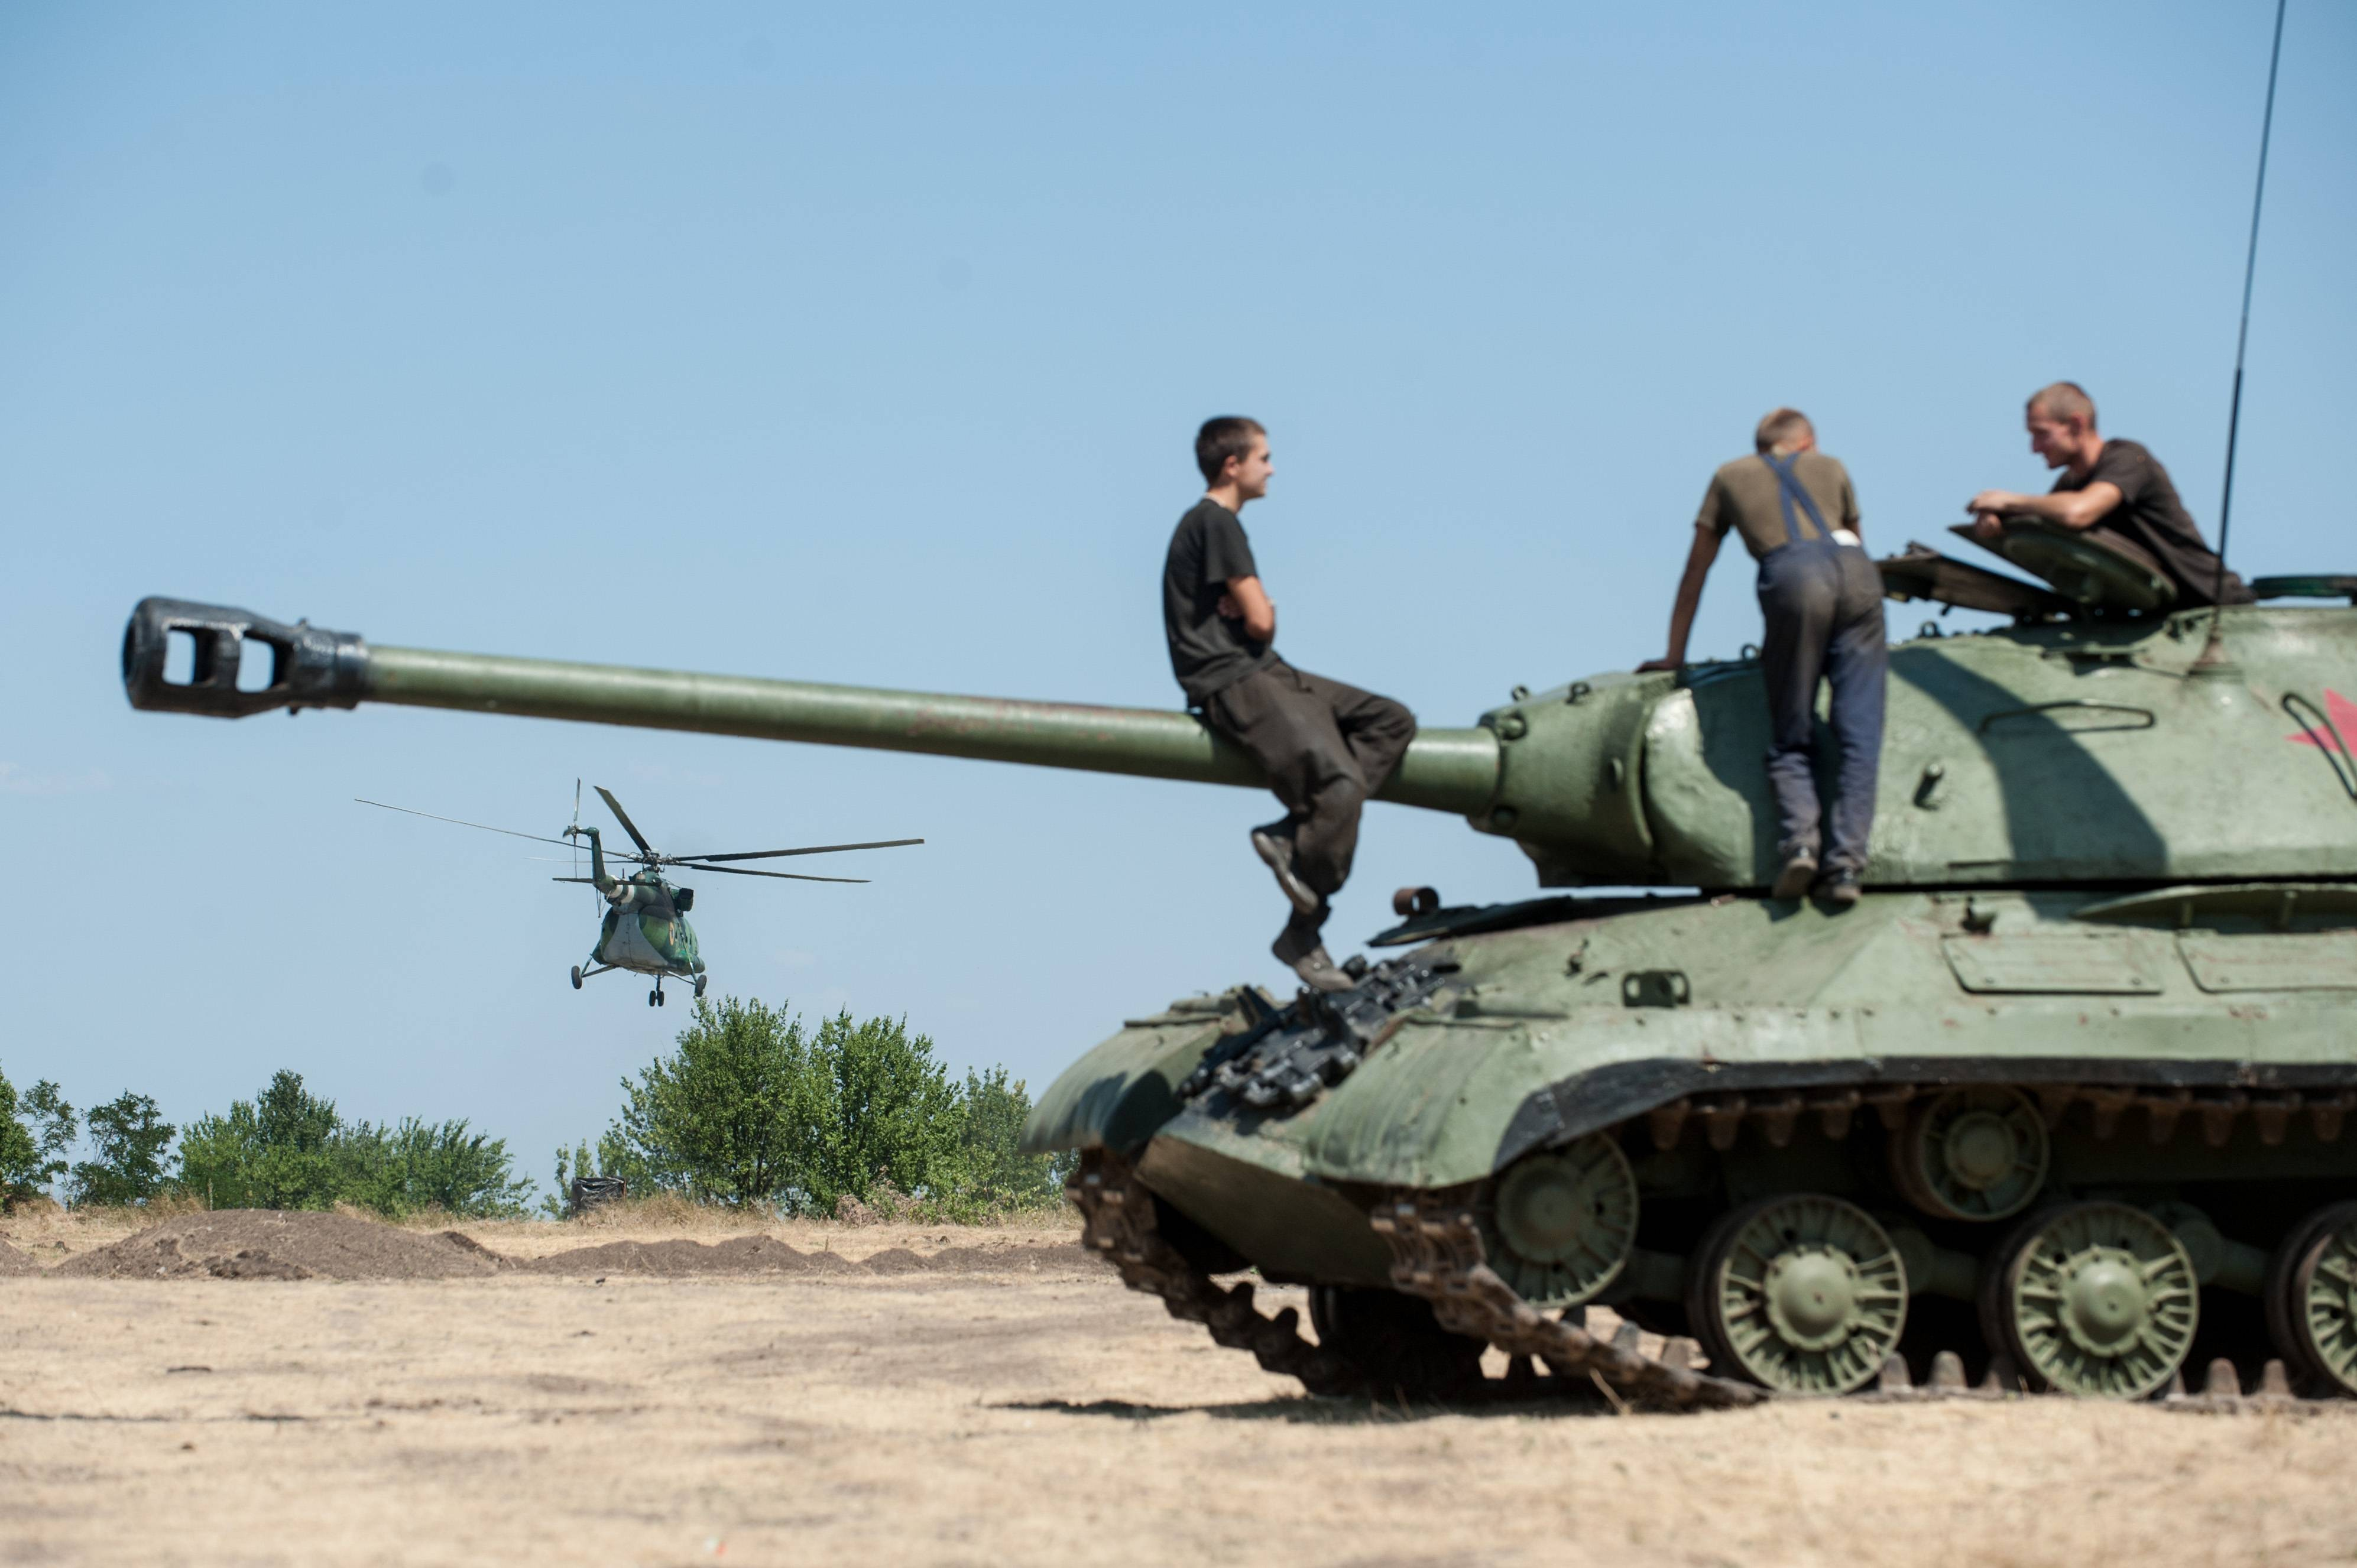 Ukrainian government soldiers sit atop of a tank in Donetsk region, eastern Ukraine, Saturday, Aug. 9, 2014. A top commander of the pro-Russia insurgency in eastern Ukraine said Saturday that Ukrainian forces have seized a key town, leaving the rebel region's largest city of Donetsk surrounded.